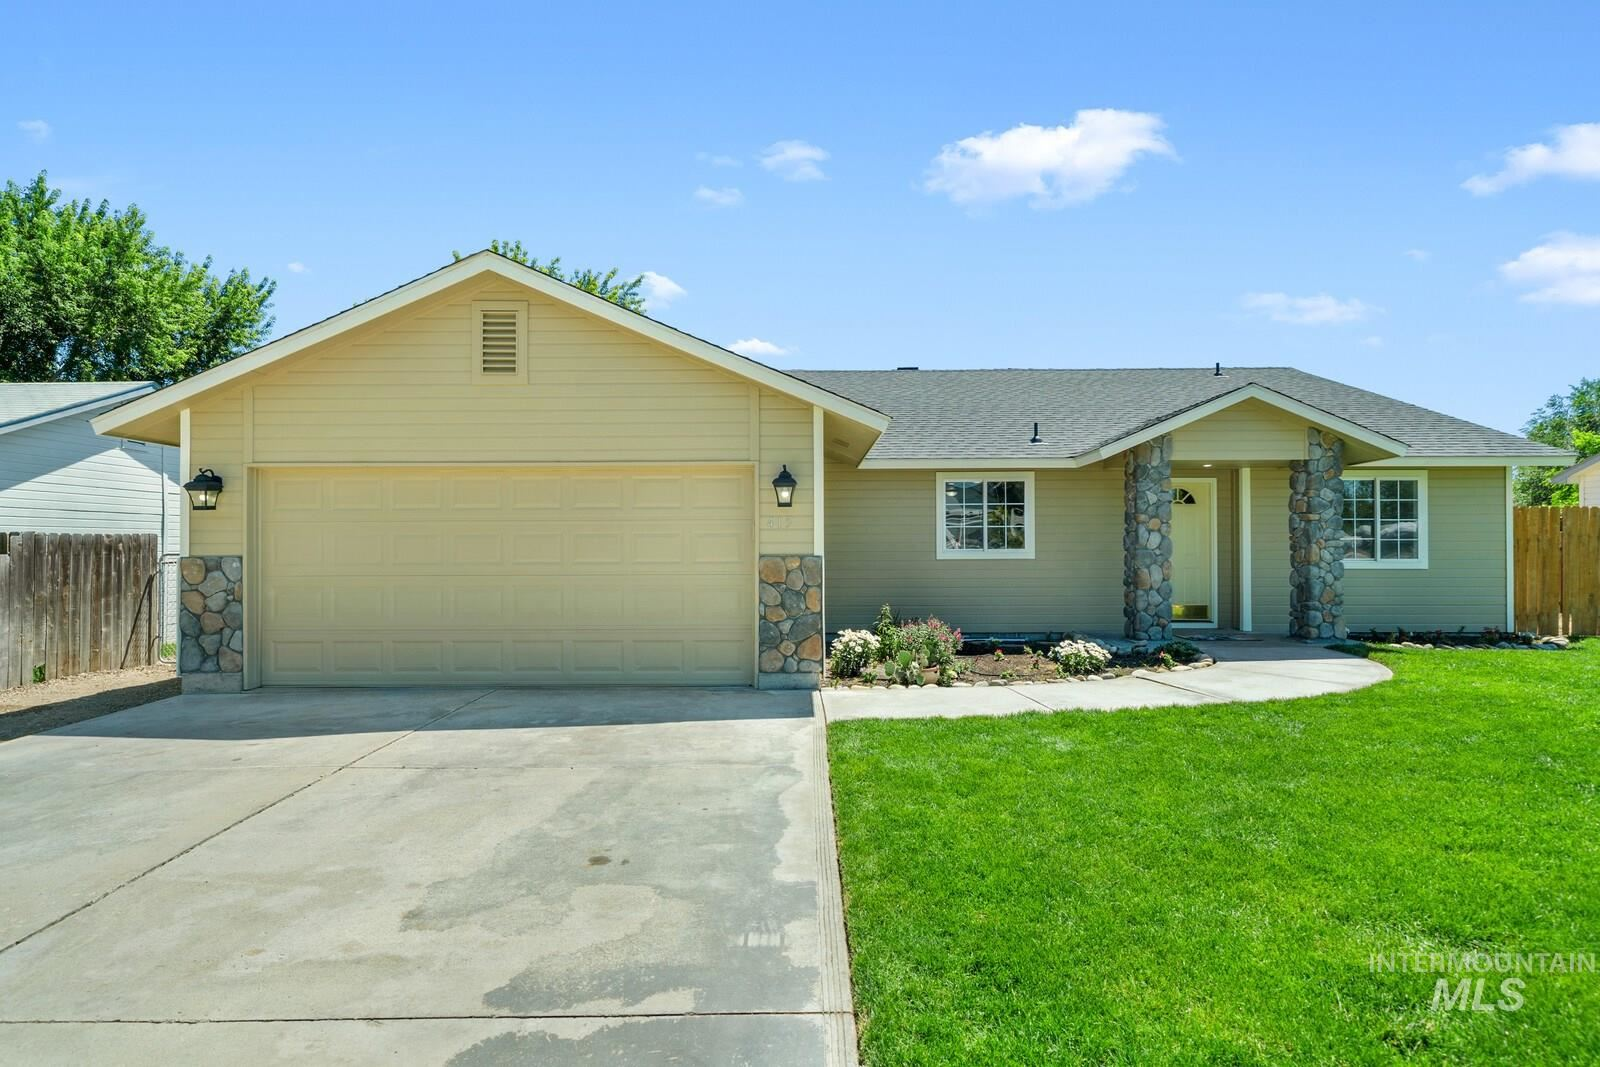 415 W Concord St, Middleton, ID 83644 - MLS#: 98772964